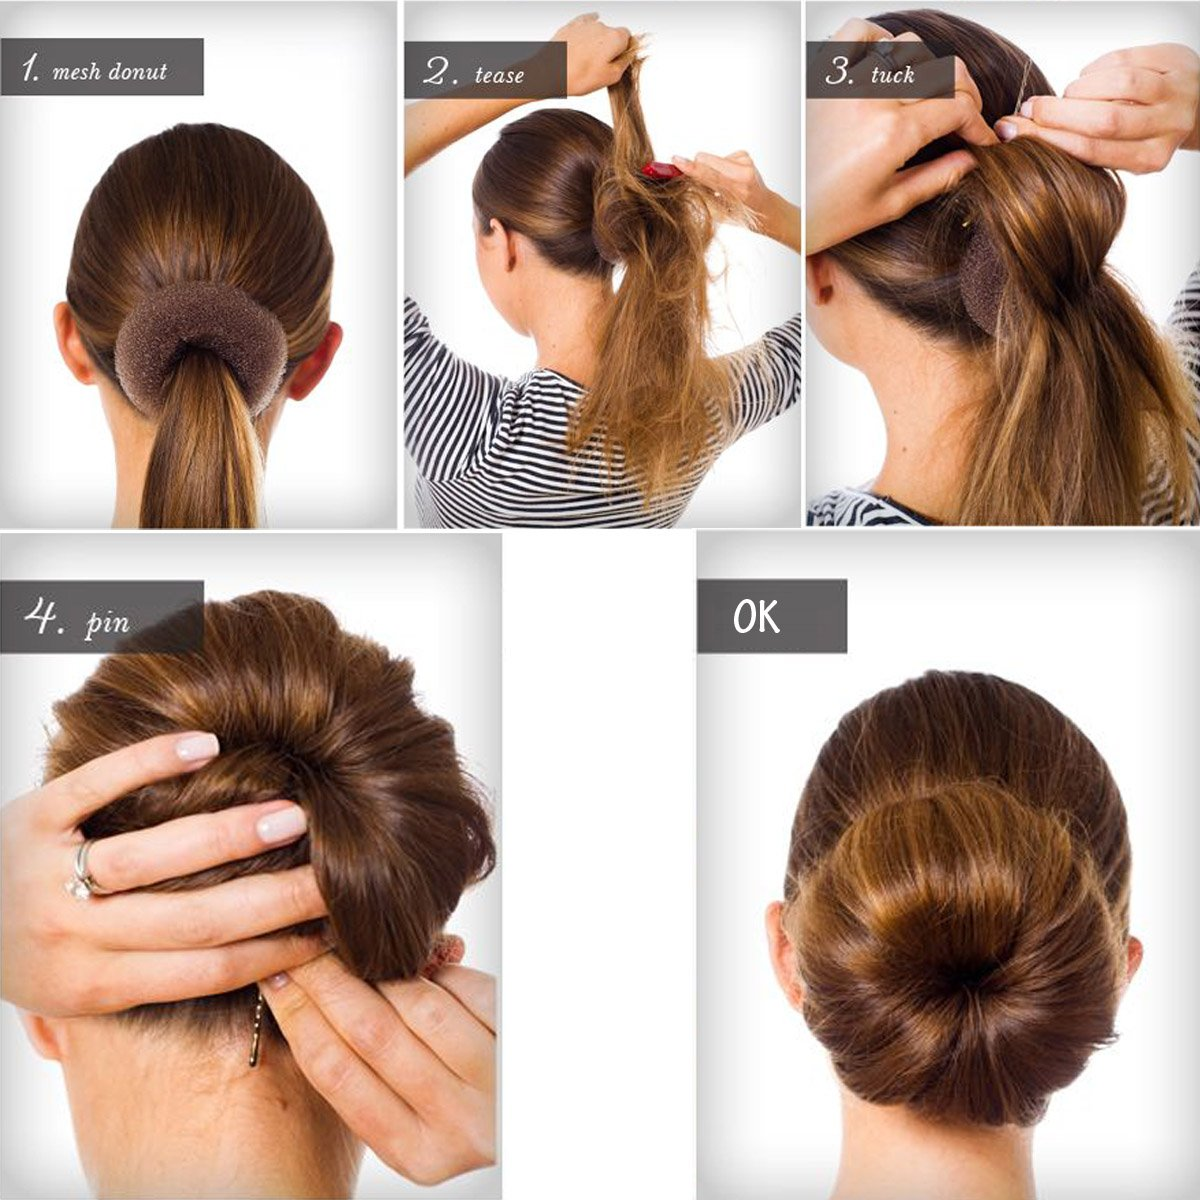 hairstyles using a bun donut discover the secret to the perfect sock bun for short hair more. Black Bedroom Furniture Sets. Home Design Ideas